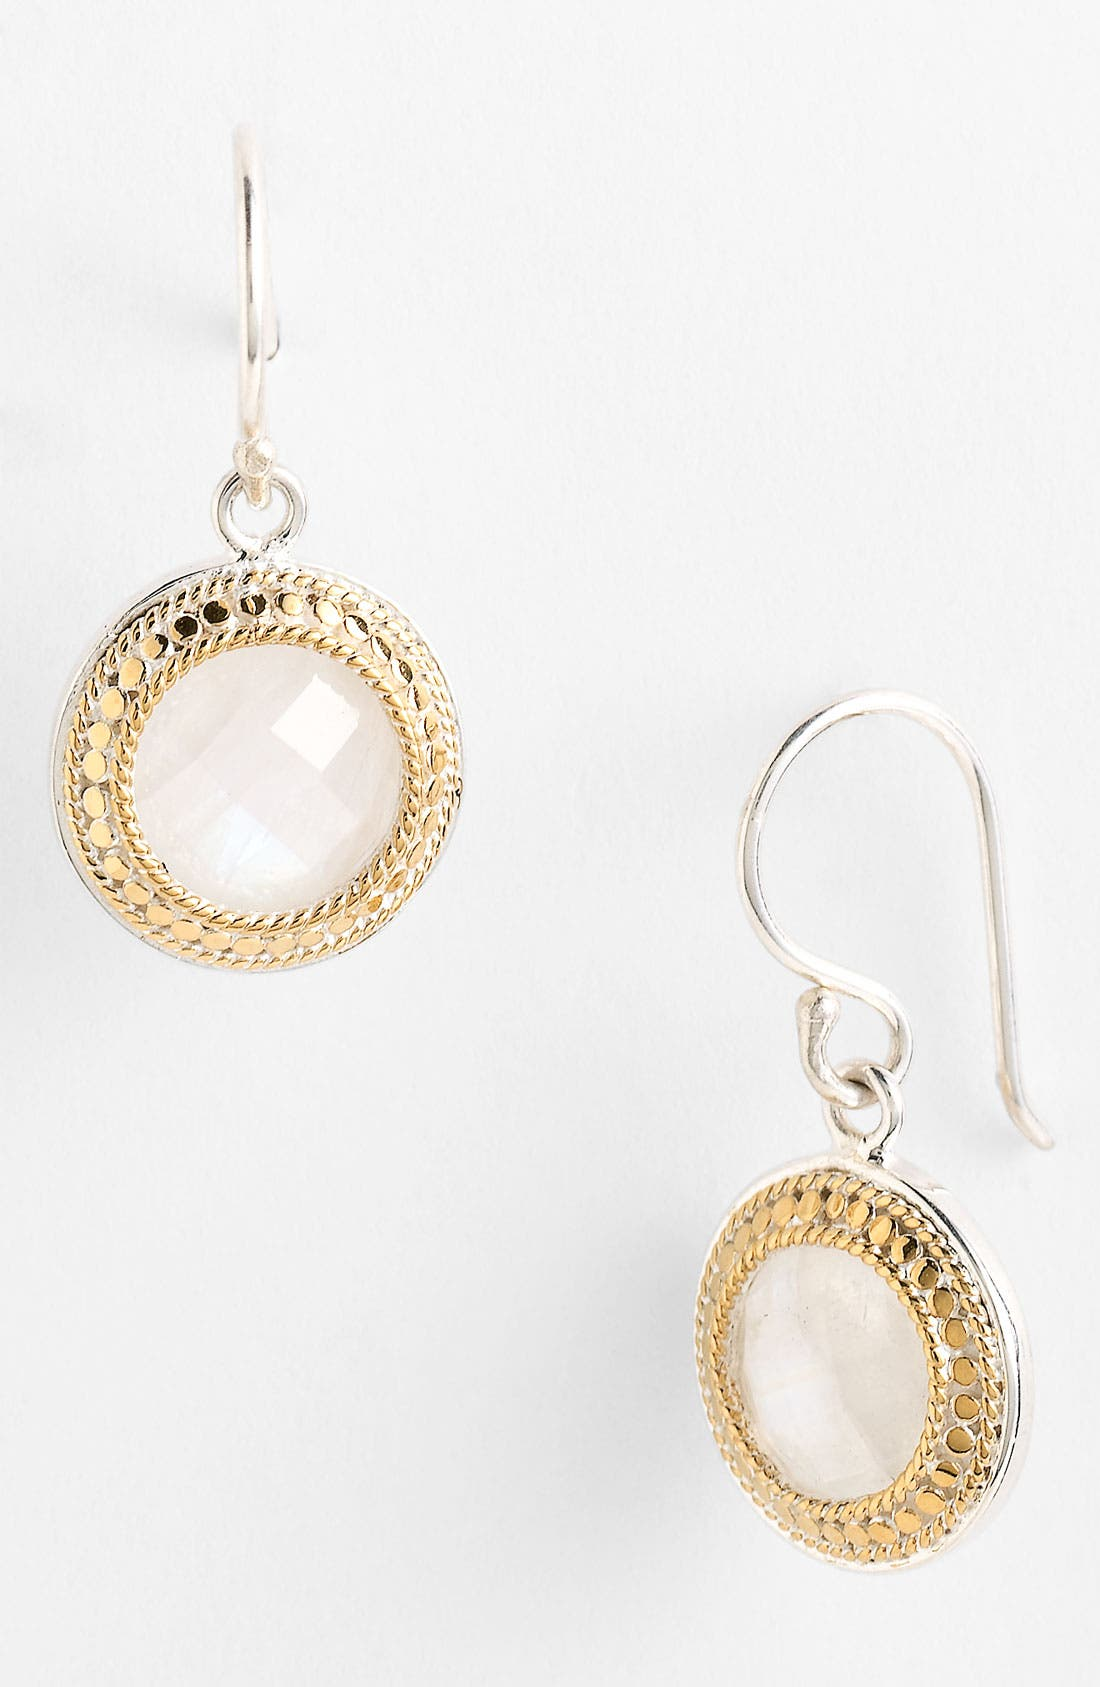 Alternate Image 1 Selected - Anna Beck 'Gili' Small Stone Drop Earrings (Nordstrom Exclusive)